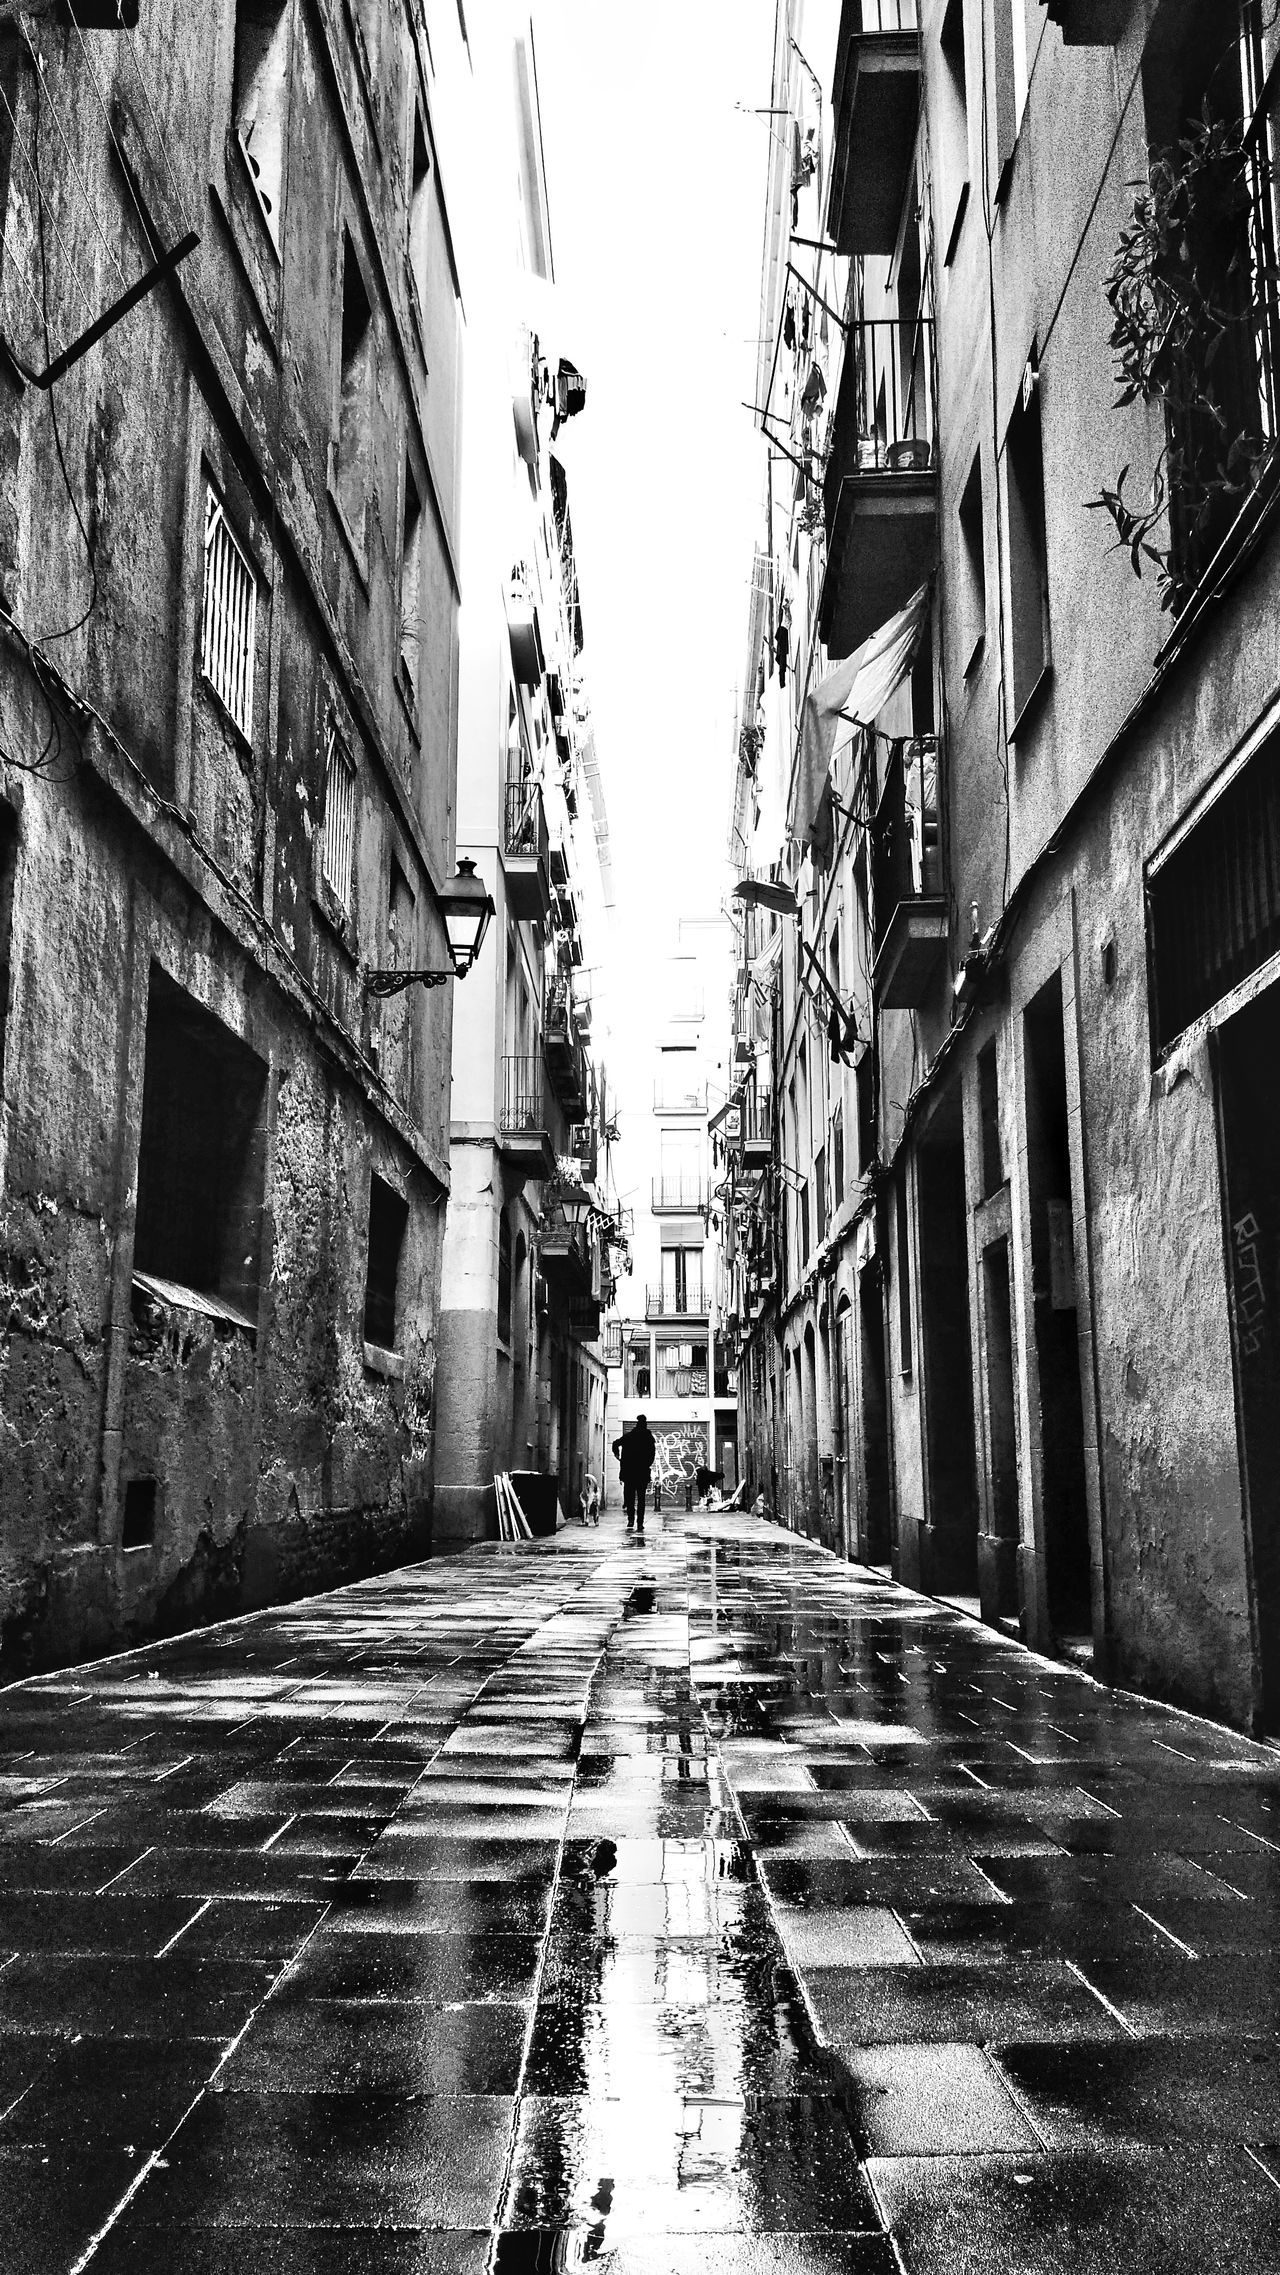 El Raval....Wet Rain Bnw_architecturelines Bnw_of_our_world Bnw_city Bnw_streetphotography Bnw_captures Bnw_pattern Bnw_collection Bnw_snapshots Barcelona Streets Barcelona Streetphotography Barcelonainspira Wet Streets Narrow Street Old City Reflection_collection Bnw_europe Barcelona_blackandwhite Rainy Day